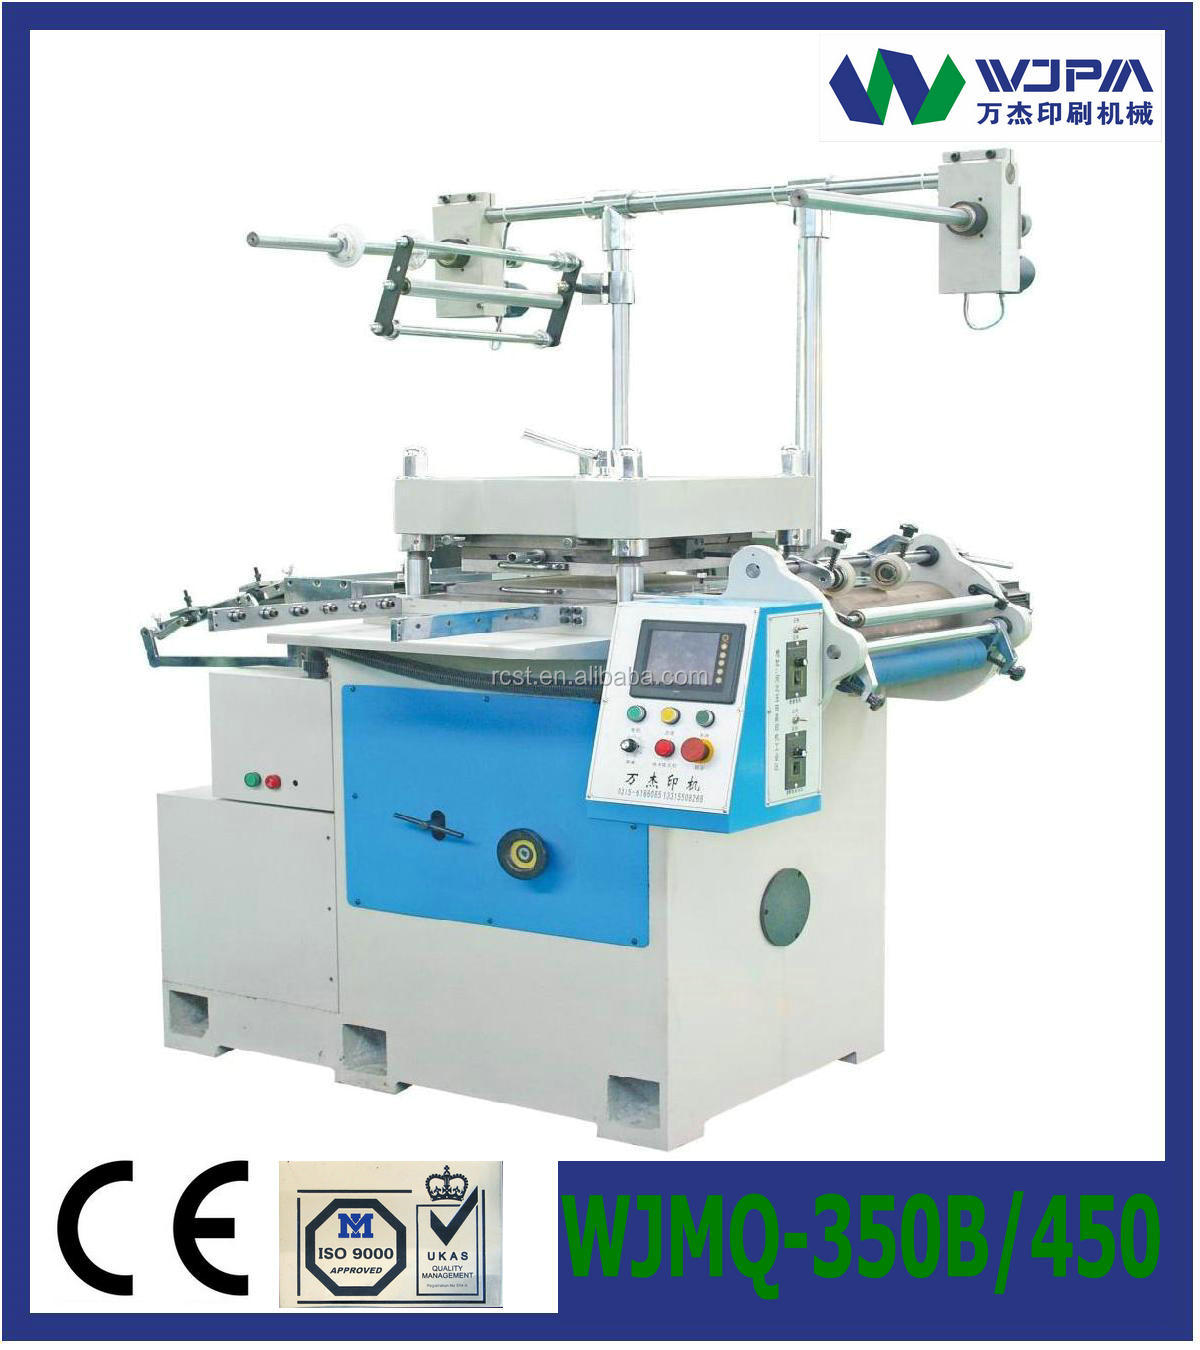 Longitudinal cutting machine horizontal style paper roll slitter rewinder